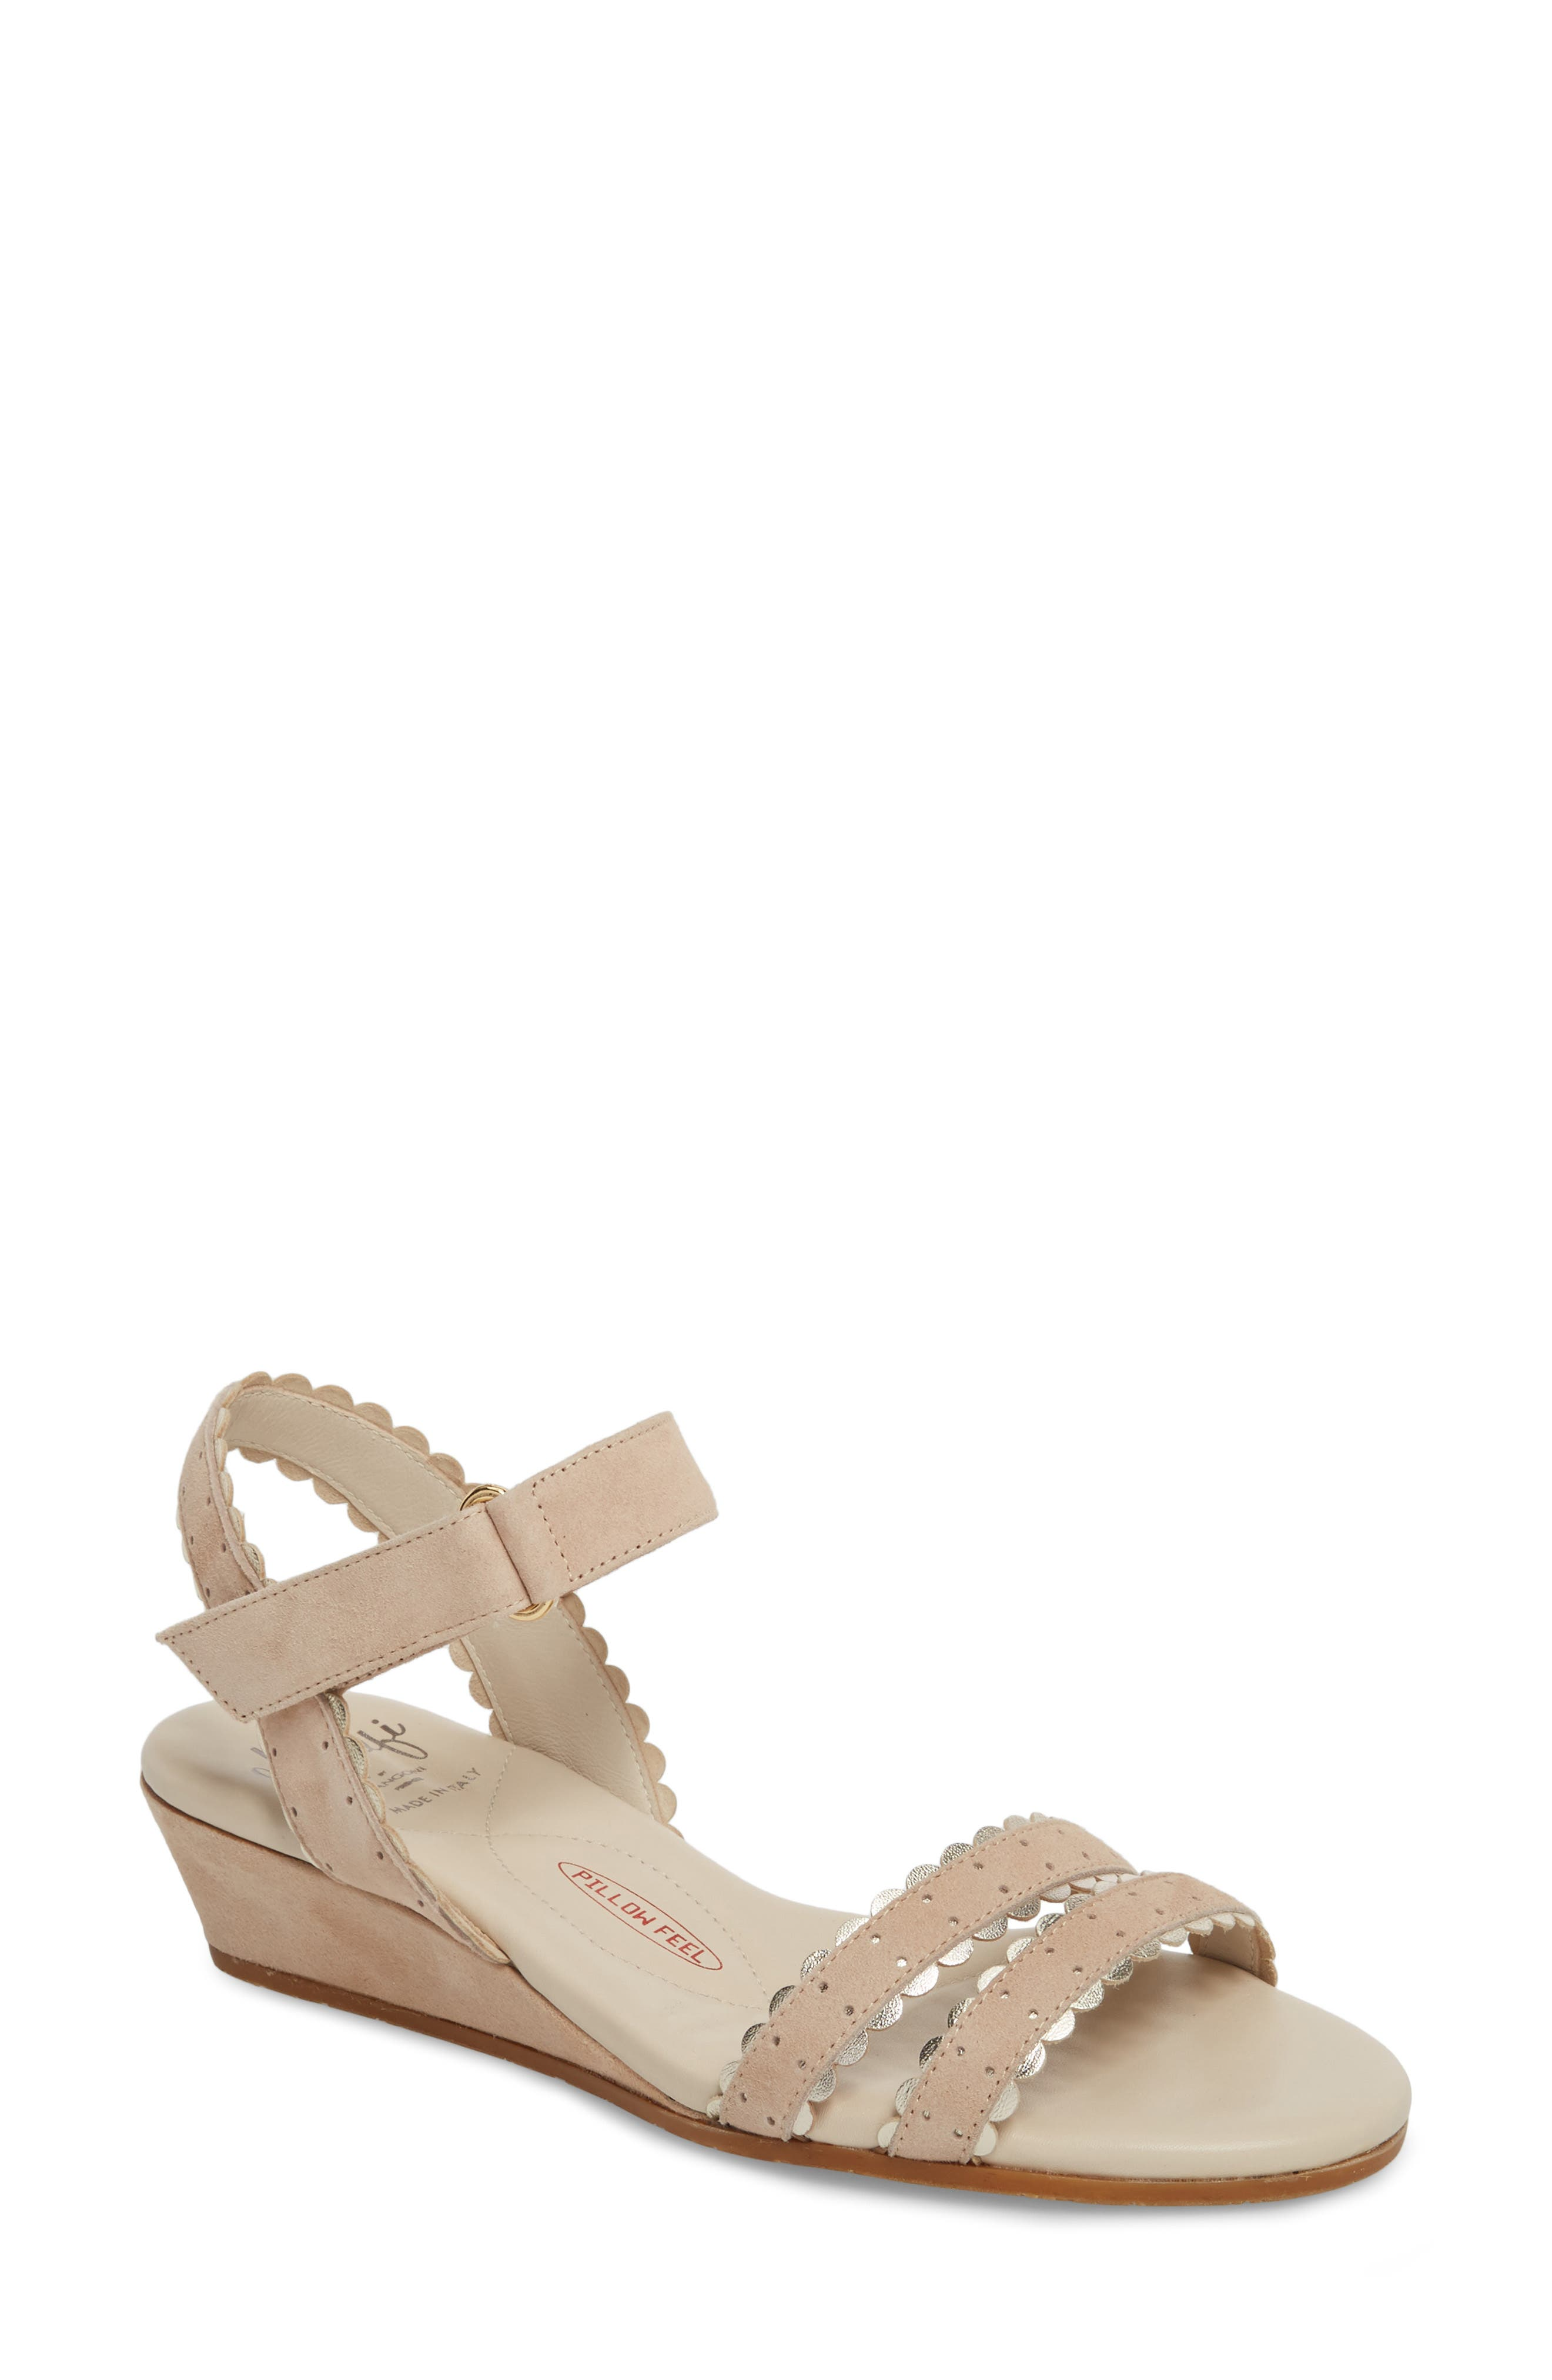 AMALFI BY RANGONI Messina Wedge Sandal in Cream/ Platinum Suede